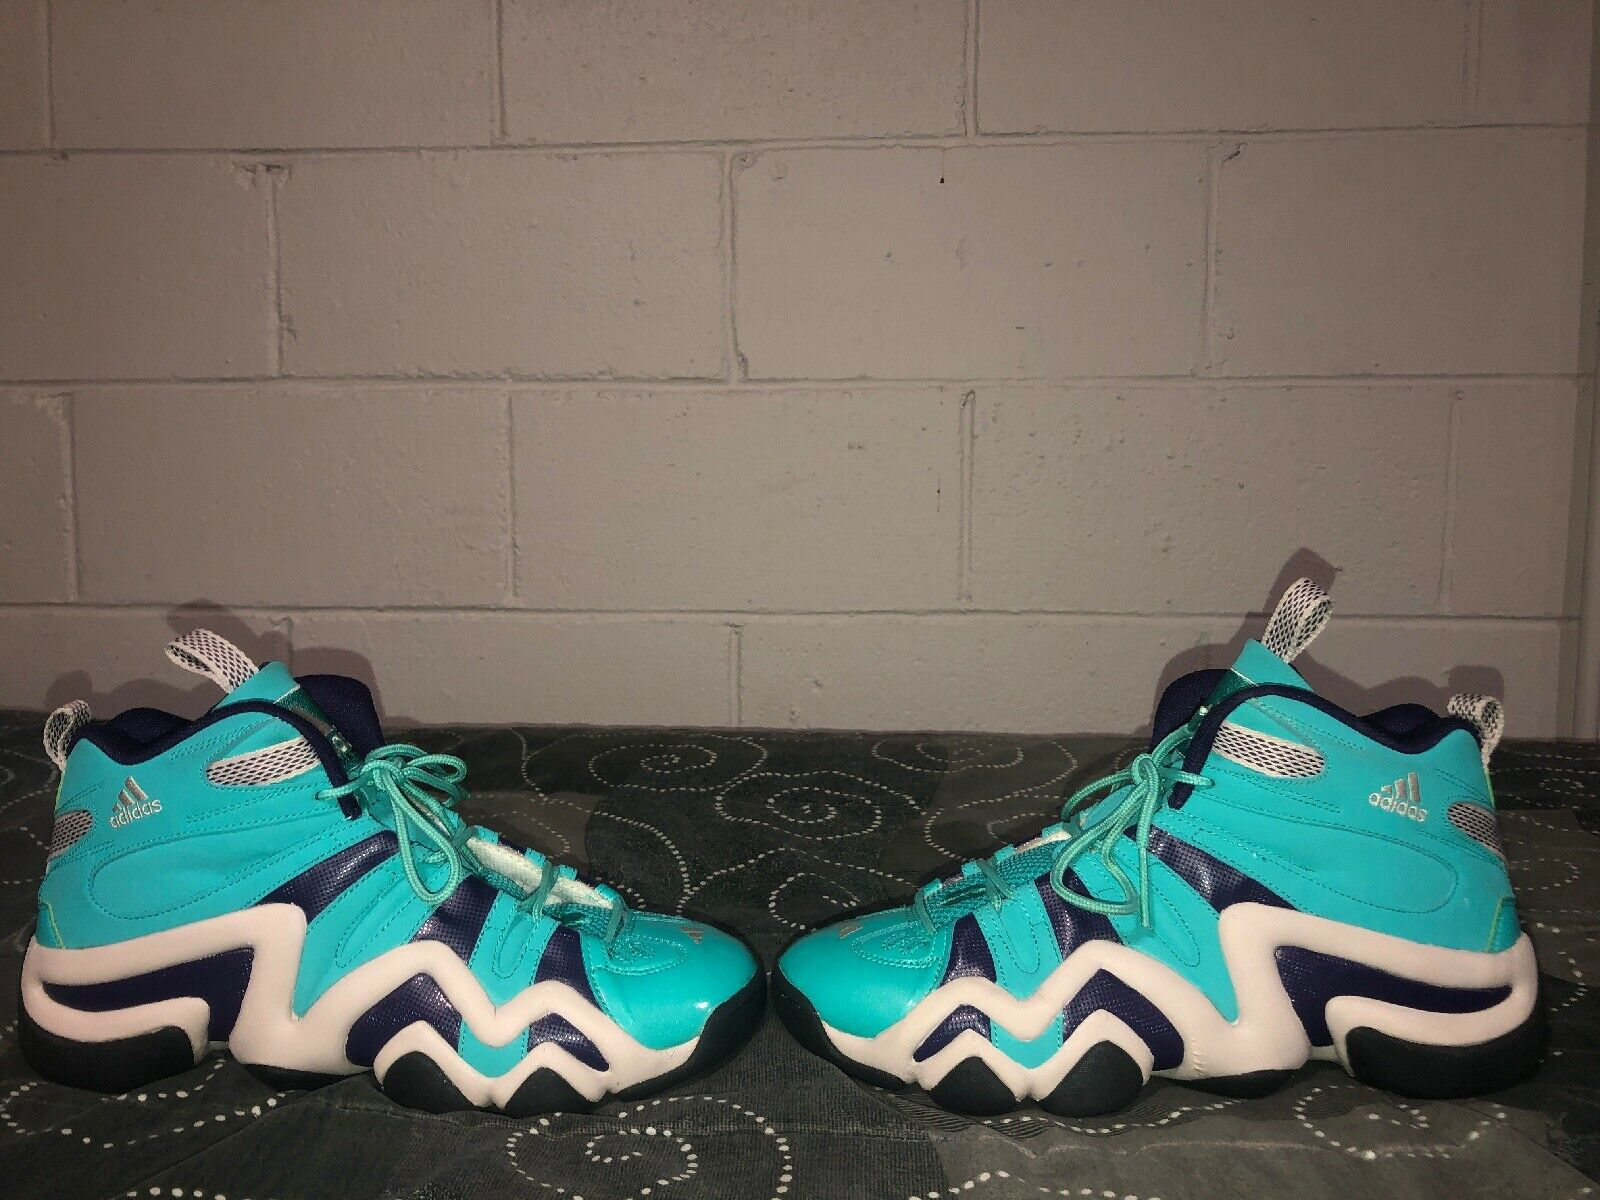 5cabcf81f Adidas Crazy 8 Mens Basketball shoes Size 10.5 Turquoise Purple Kobe Bryant